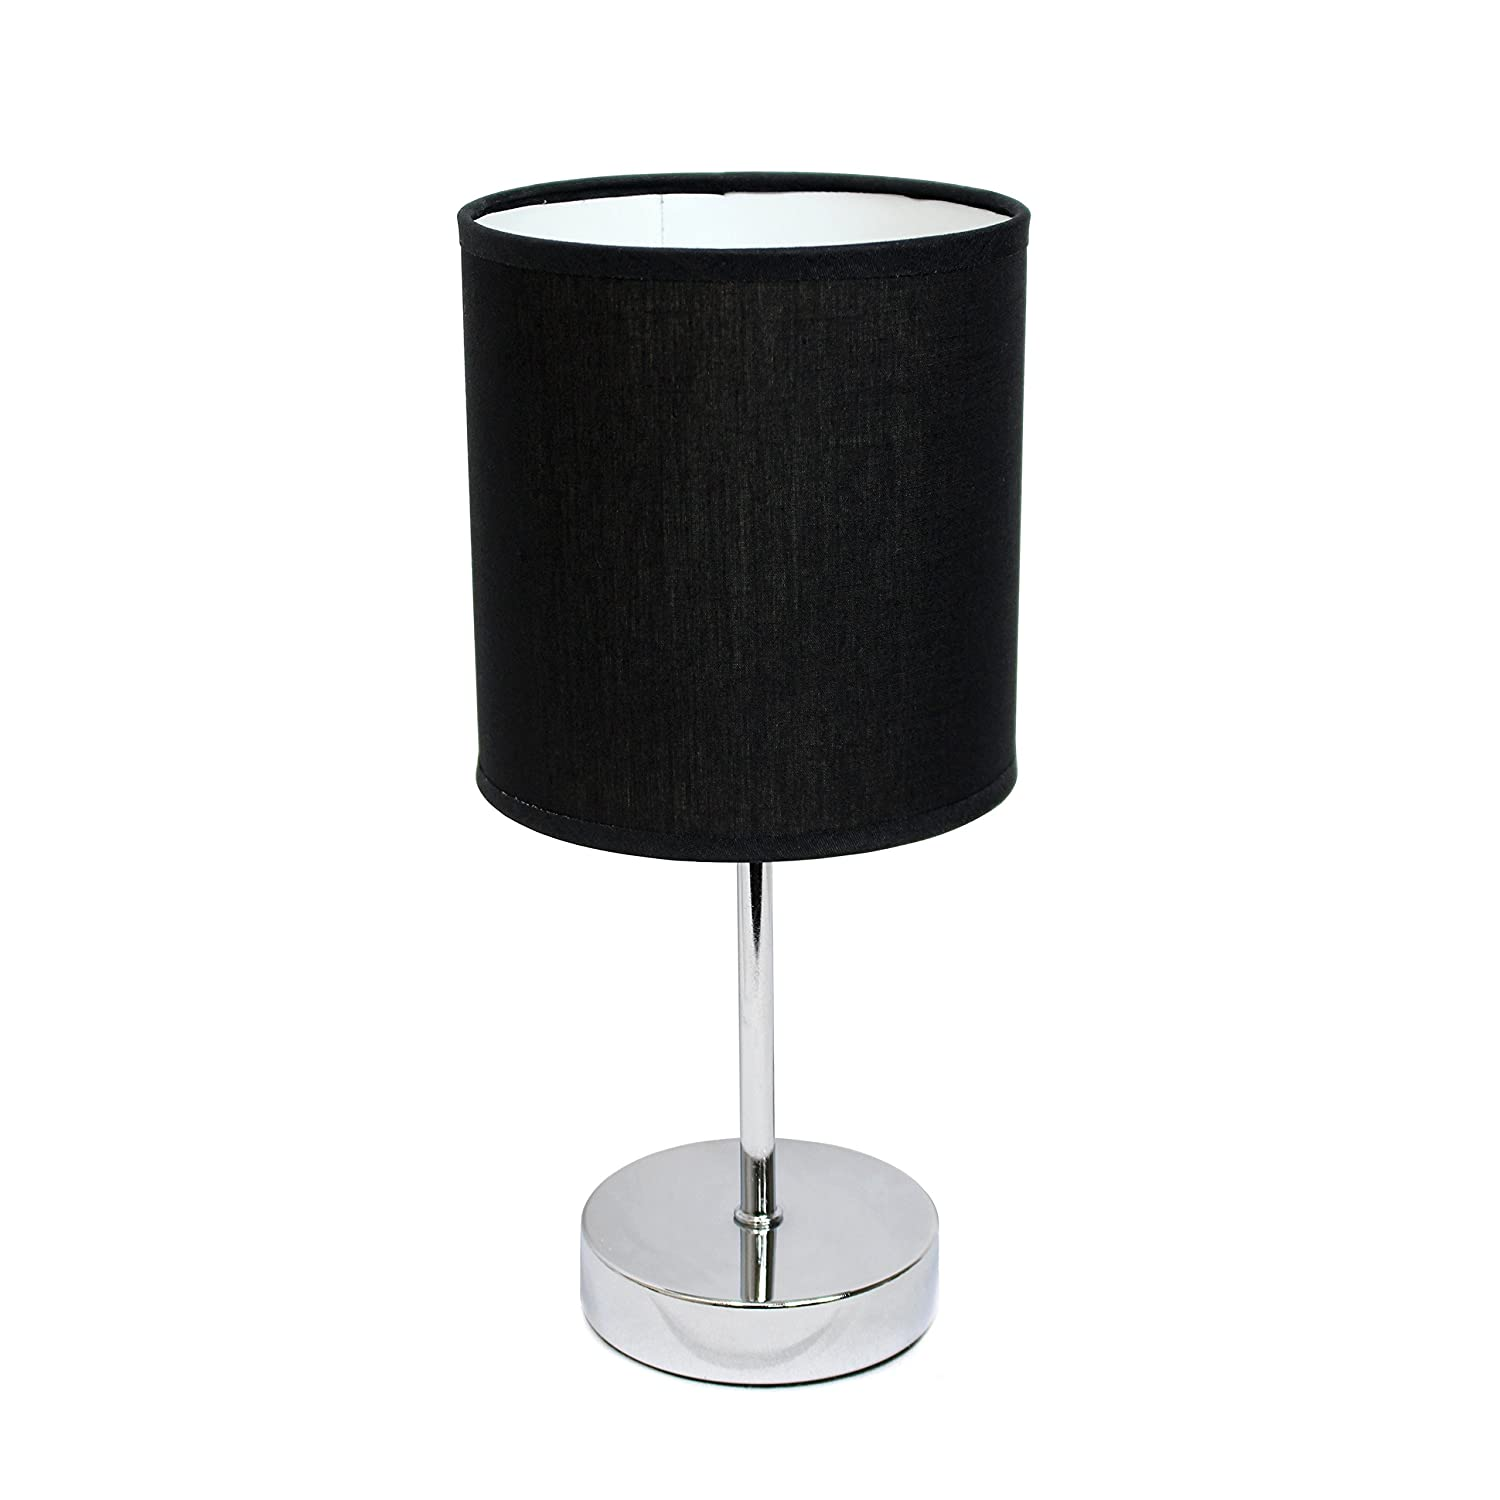 "Simple Designs Home LT2007-BLK Chrome Mini Basic Table Lamp with Fabric Shade, 5.7"" x 5.7"" x 11.81"", Black"